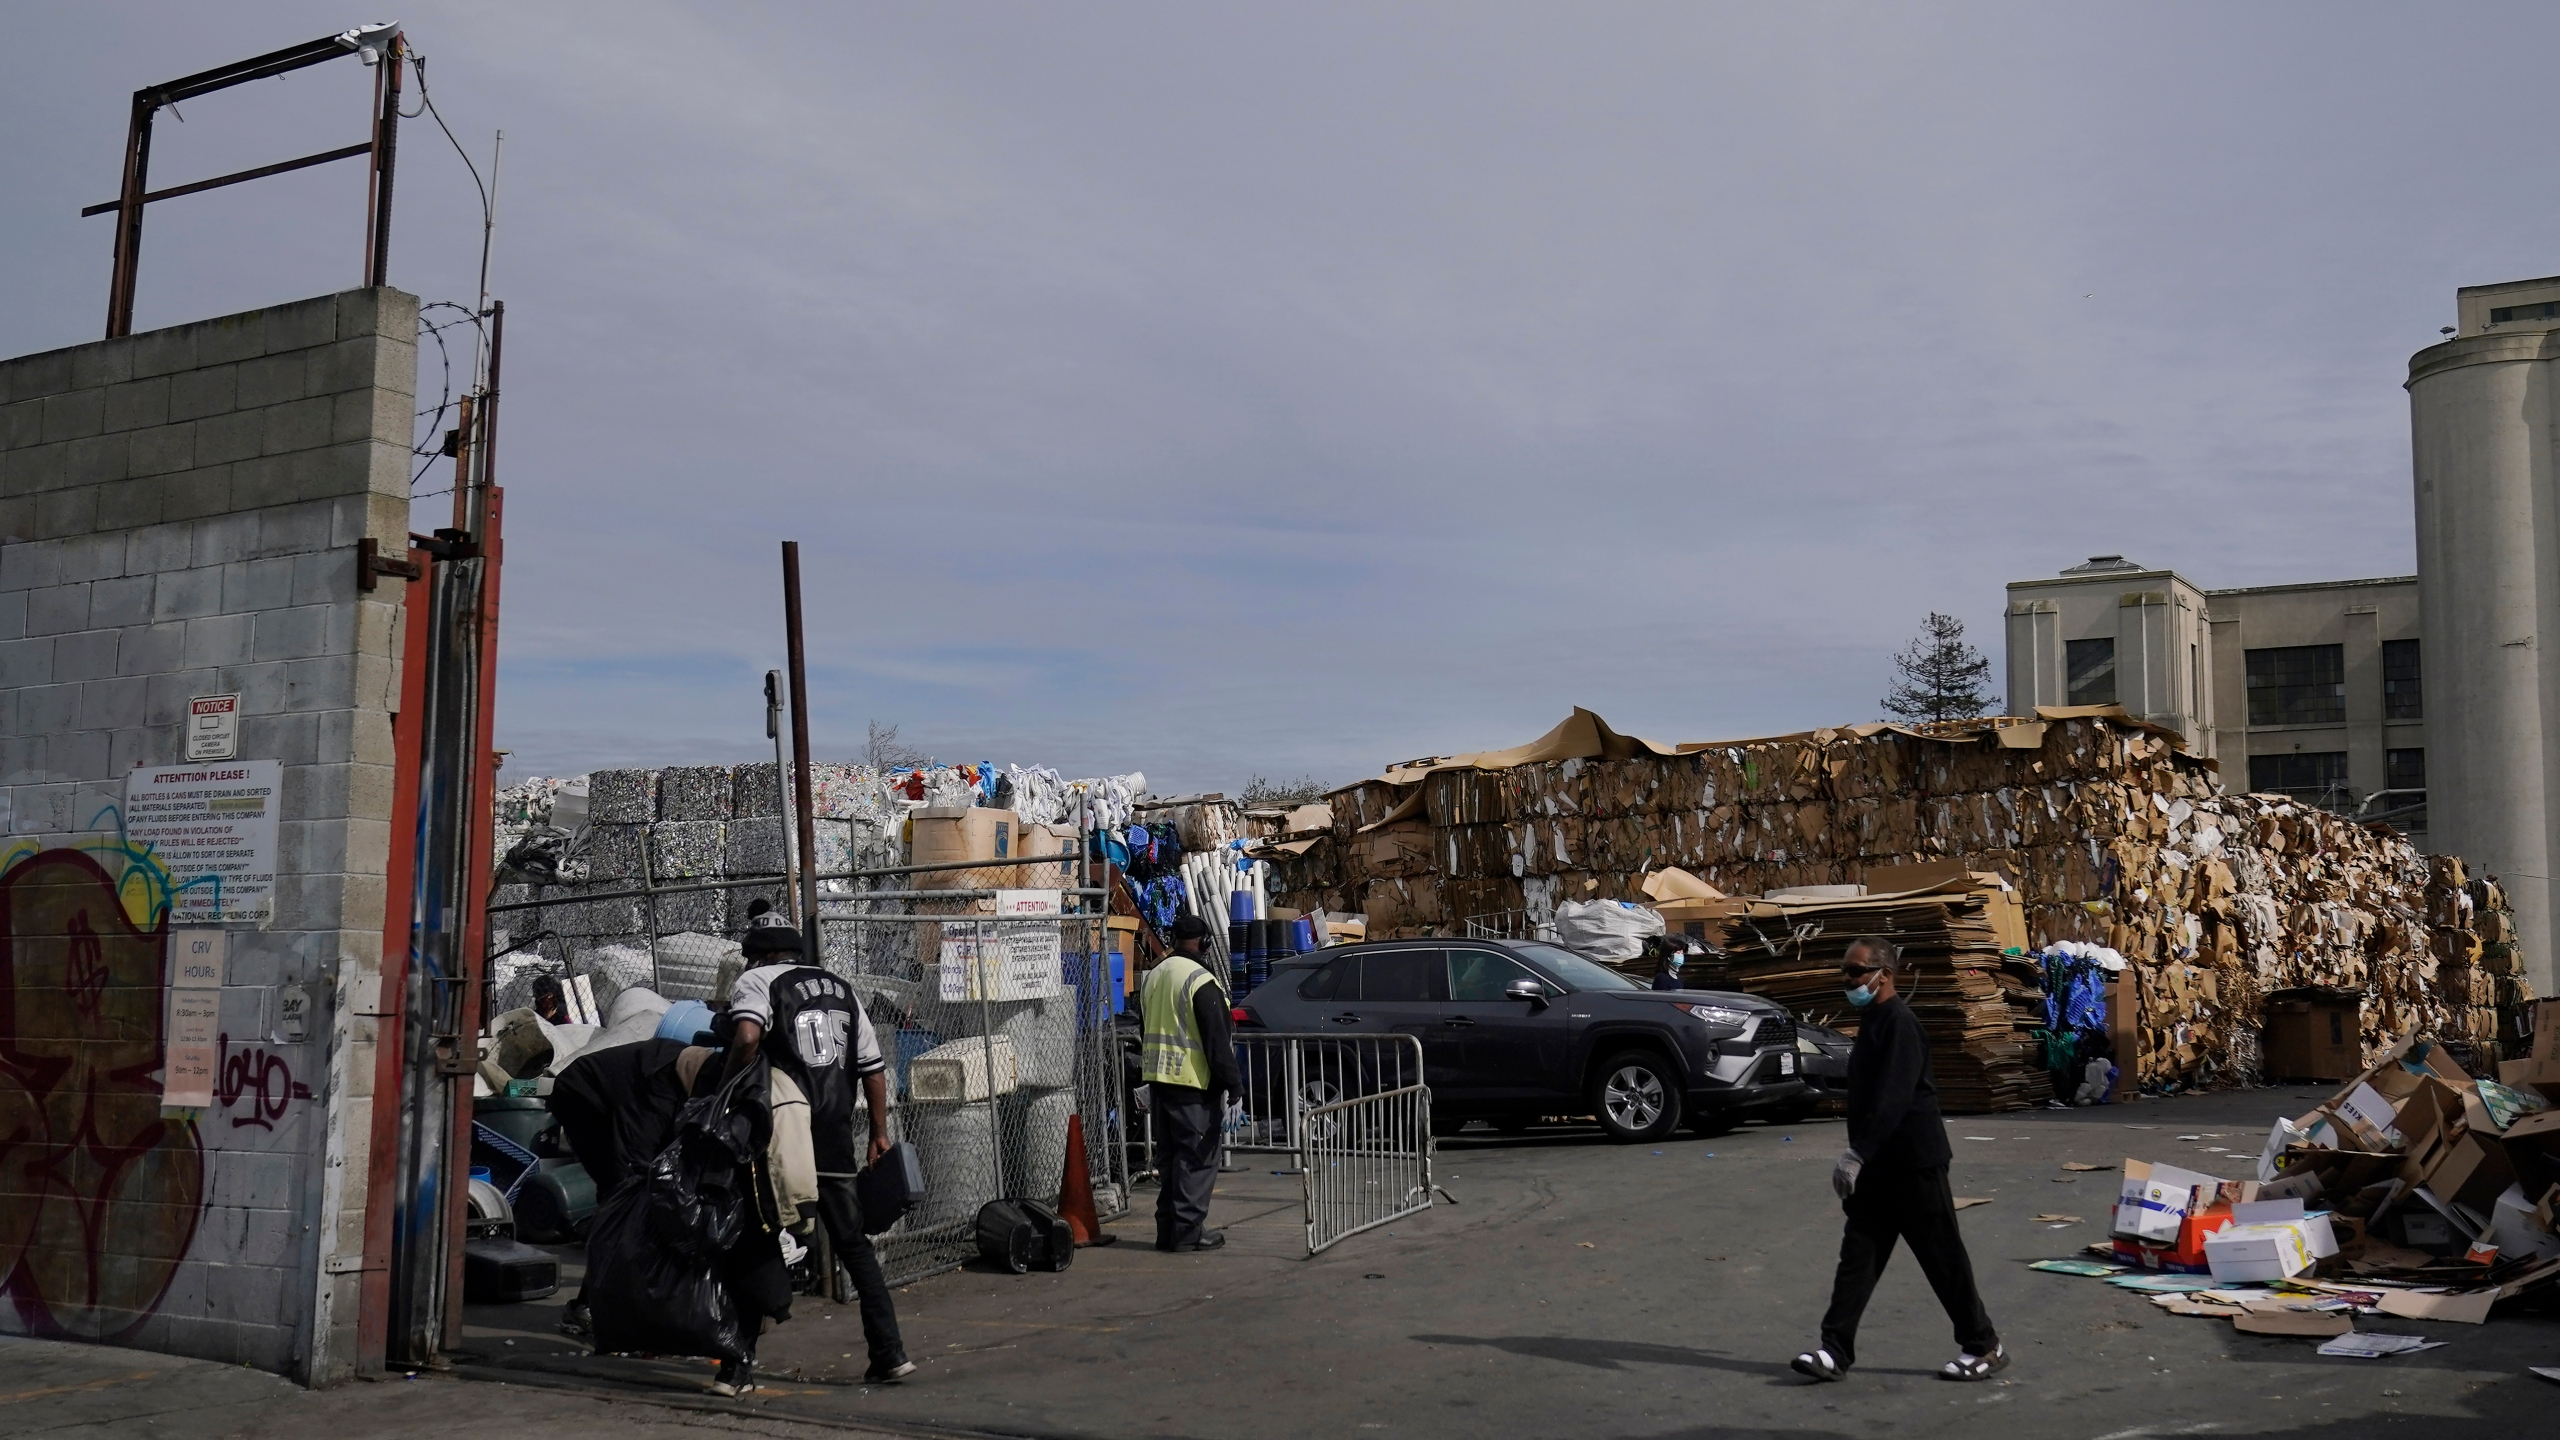 In this Feb. 18, 2021, file photo, people walk inside a recycling location in Oakland, Calif. California lawmakers have approved what advocacy groups say are the nation's strongest protections against falsely labeling items as recyclable when they in fact are destined for landfills. (AP Photo/Jeff Chiu, File)